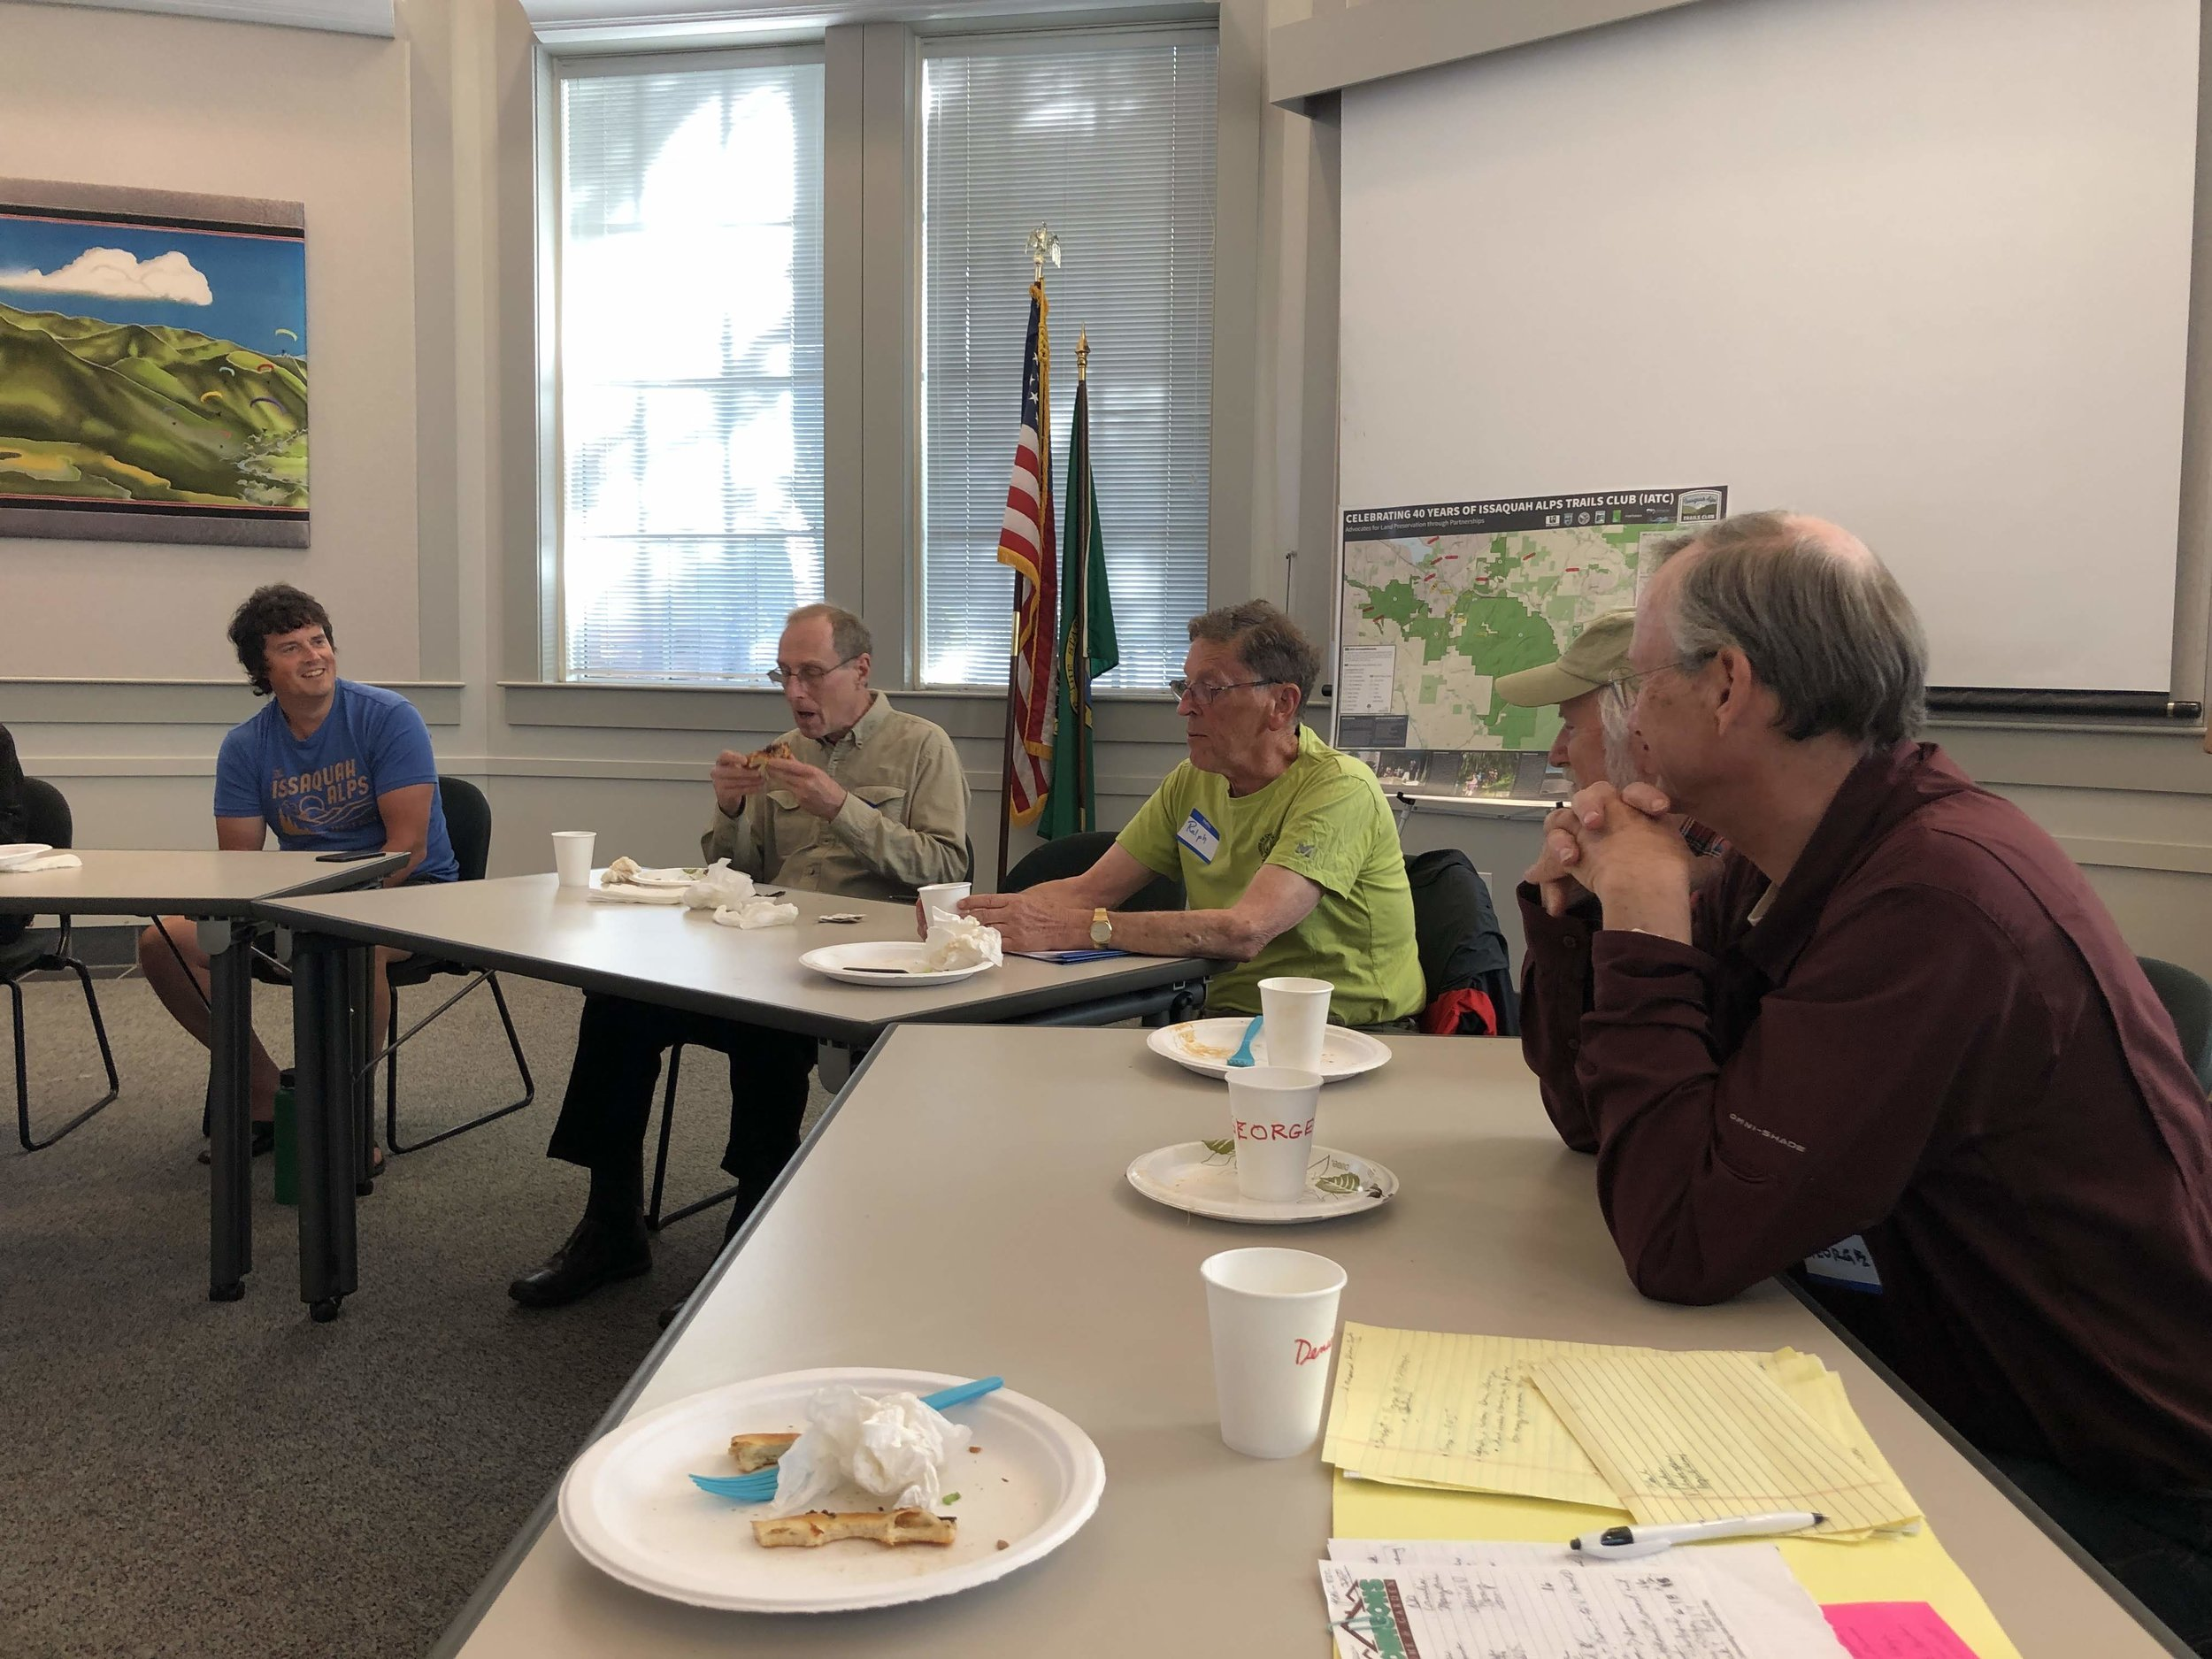 Hike Leaders discuss upcoming hikes, and strategize ways to involve new Hike Leaders in the program.